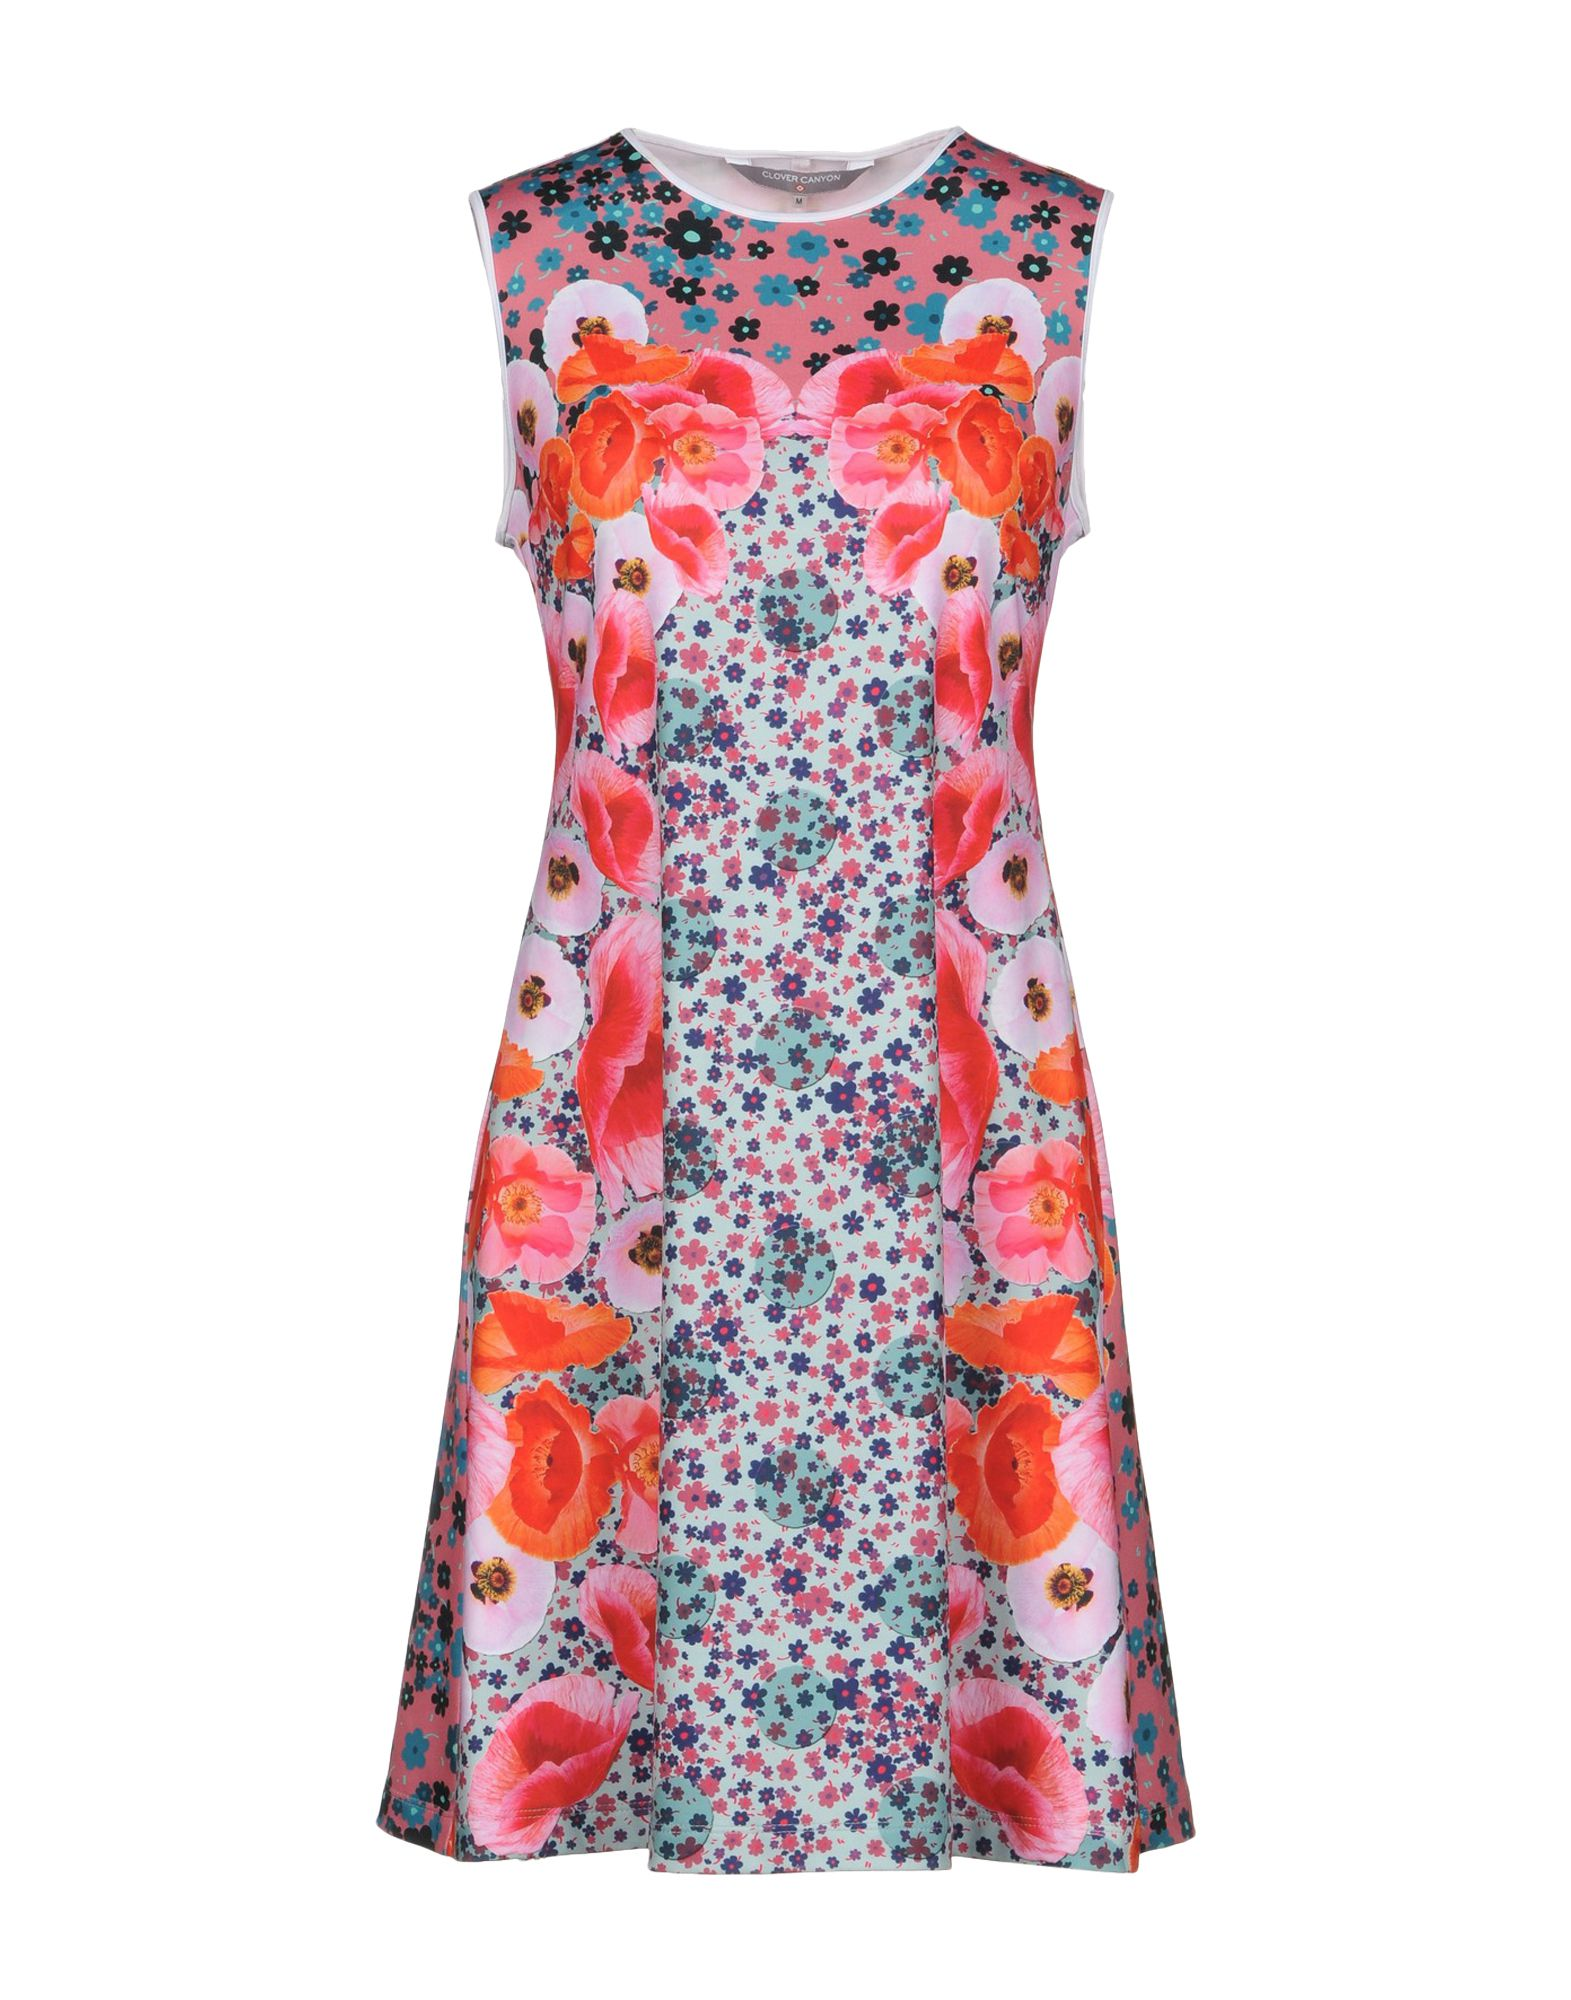 CLOVER CANYON Short Dress in Pink